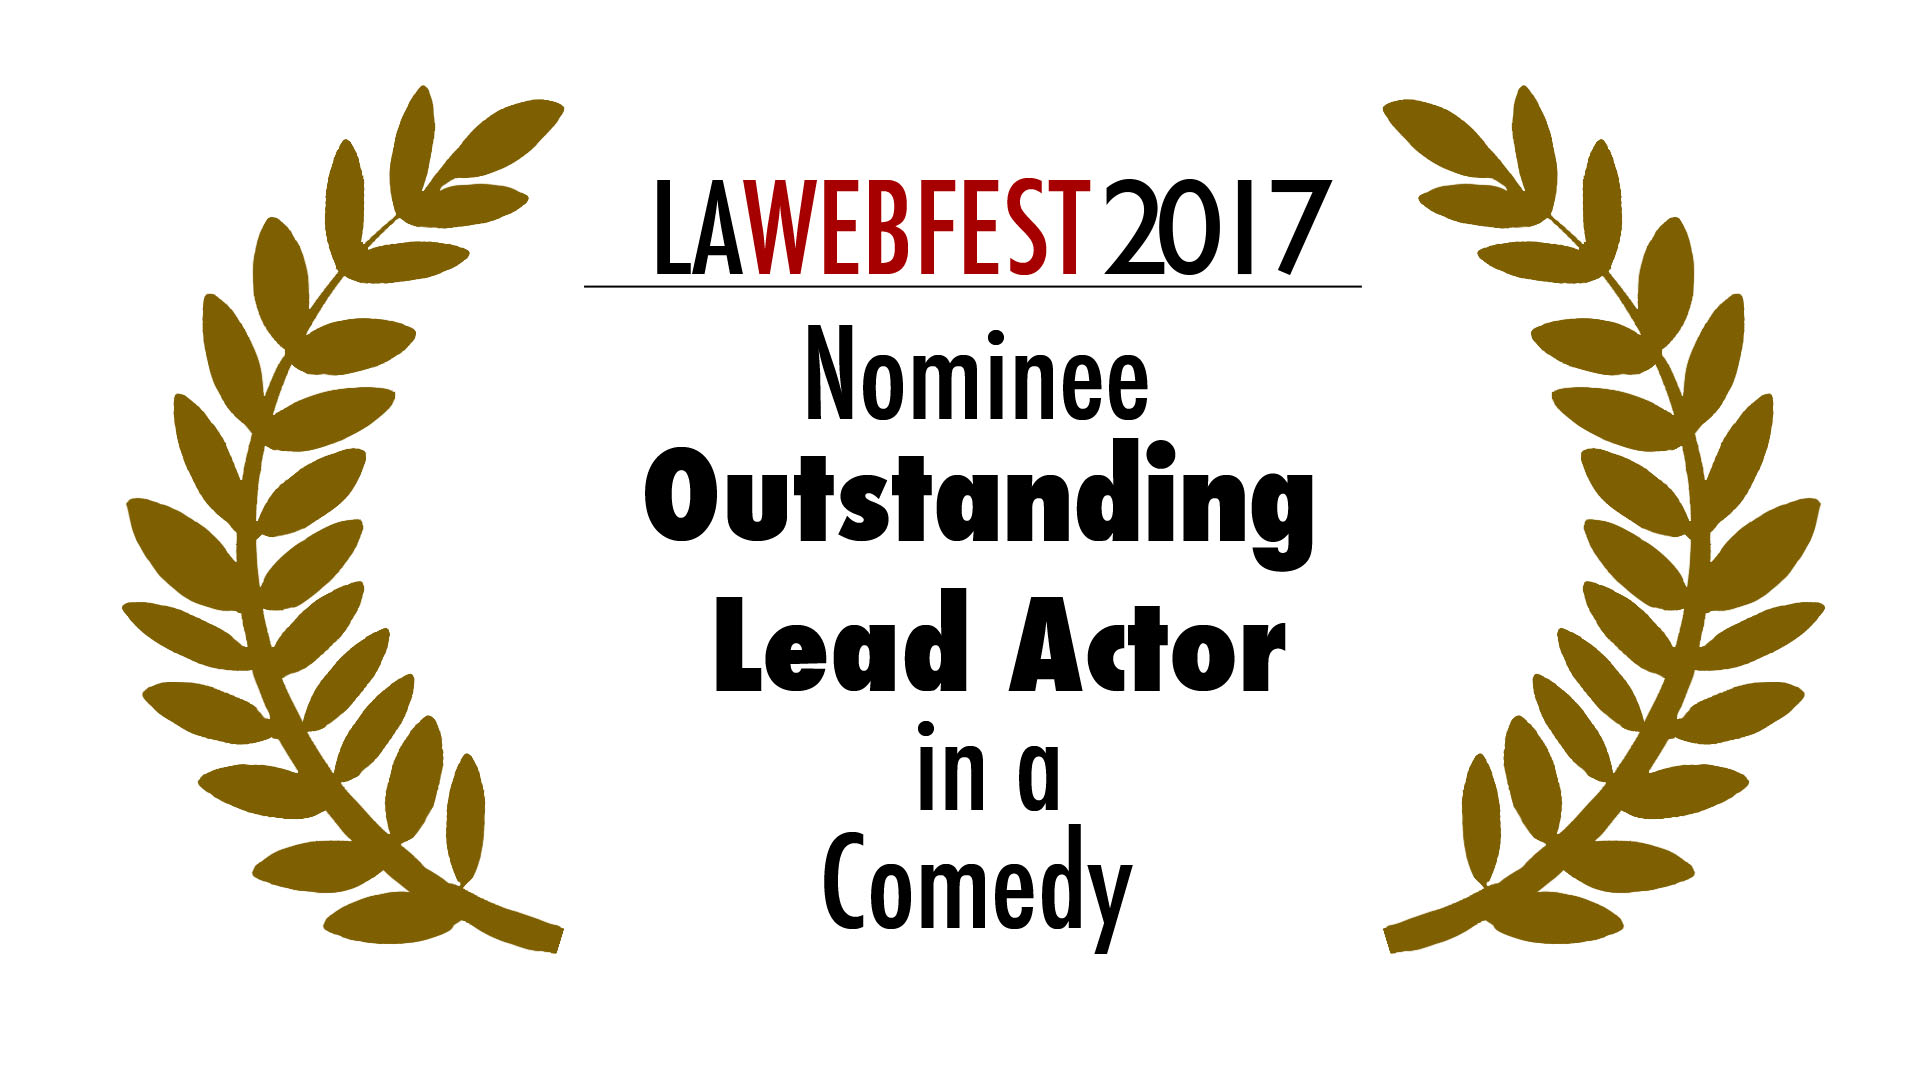 LA Webfest 2017 Lead Actor nominee